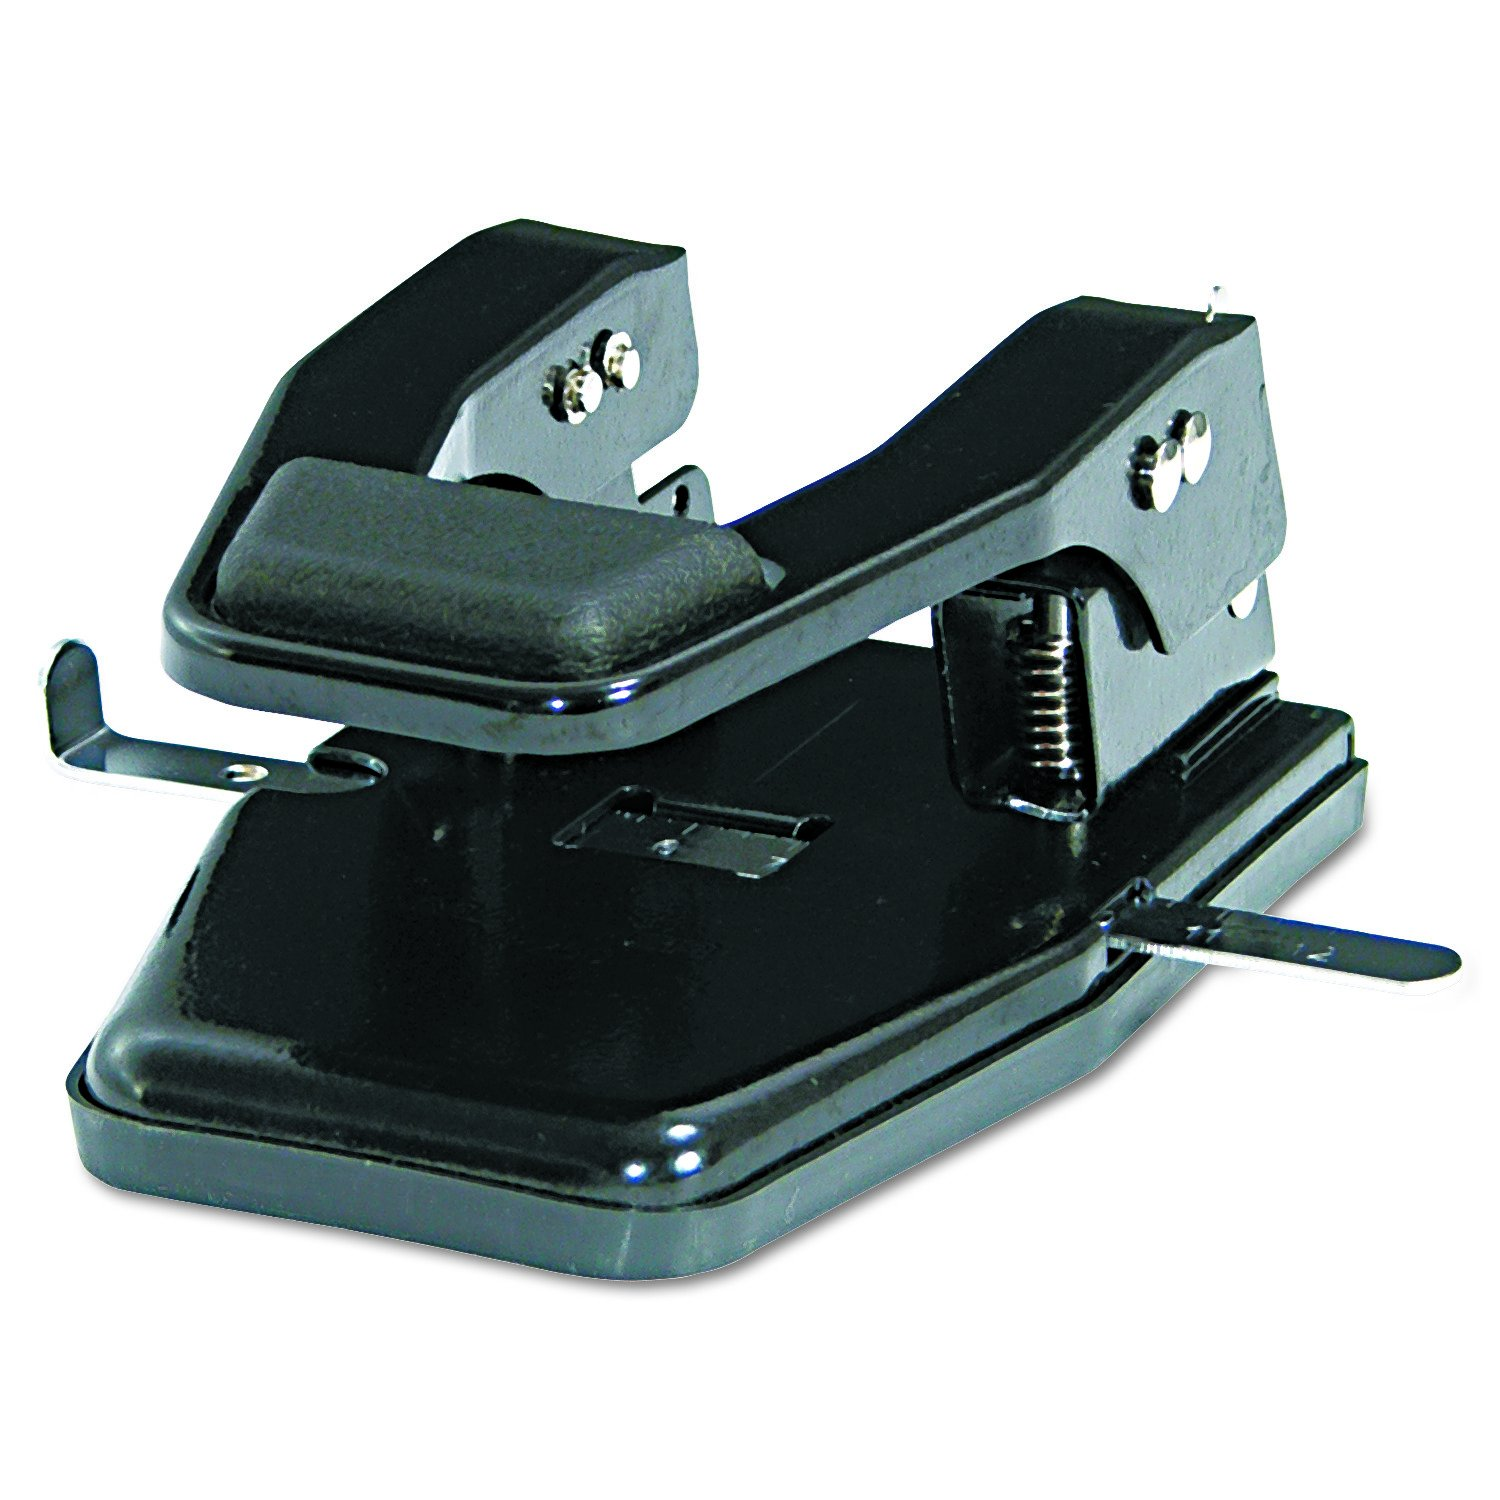 Martin Yale MP250 Master 2-Hole Paper Punch, Black, 9/32'' Hole Diameter, Punches Up To 40 Sheets, Adjustable Paper Guide, Lock-down Handle